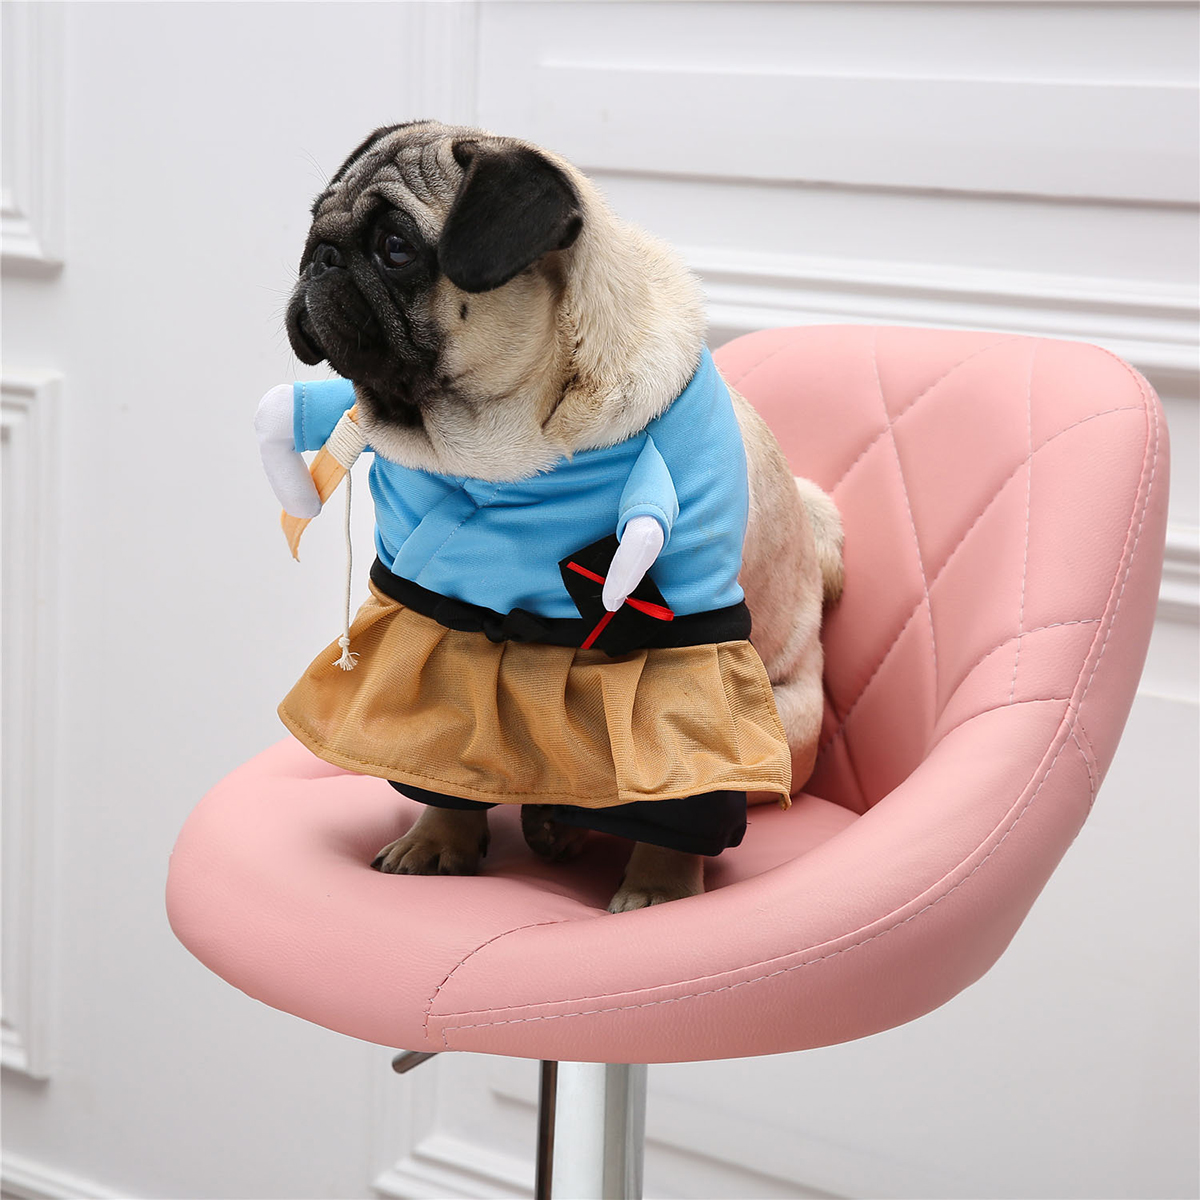 Cat-Dog-Tops-Clothes-Costume-Cool-Christmas-Halloween-Costume-Pet-Clothes thumbnail 4